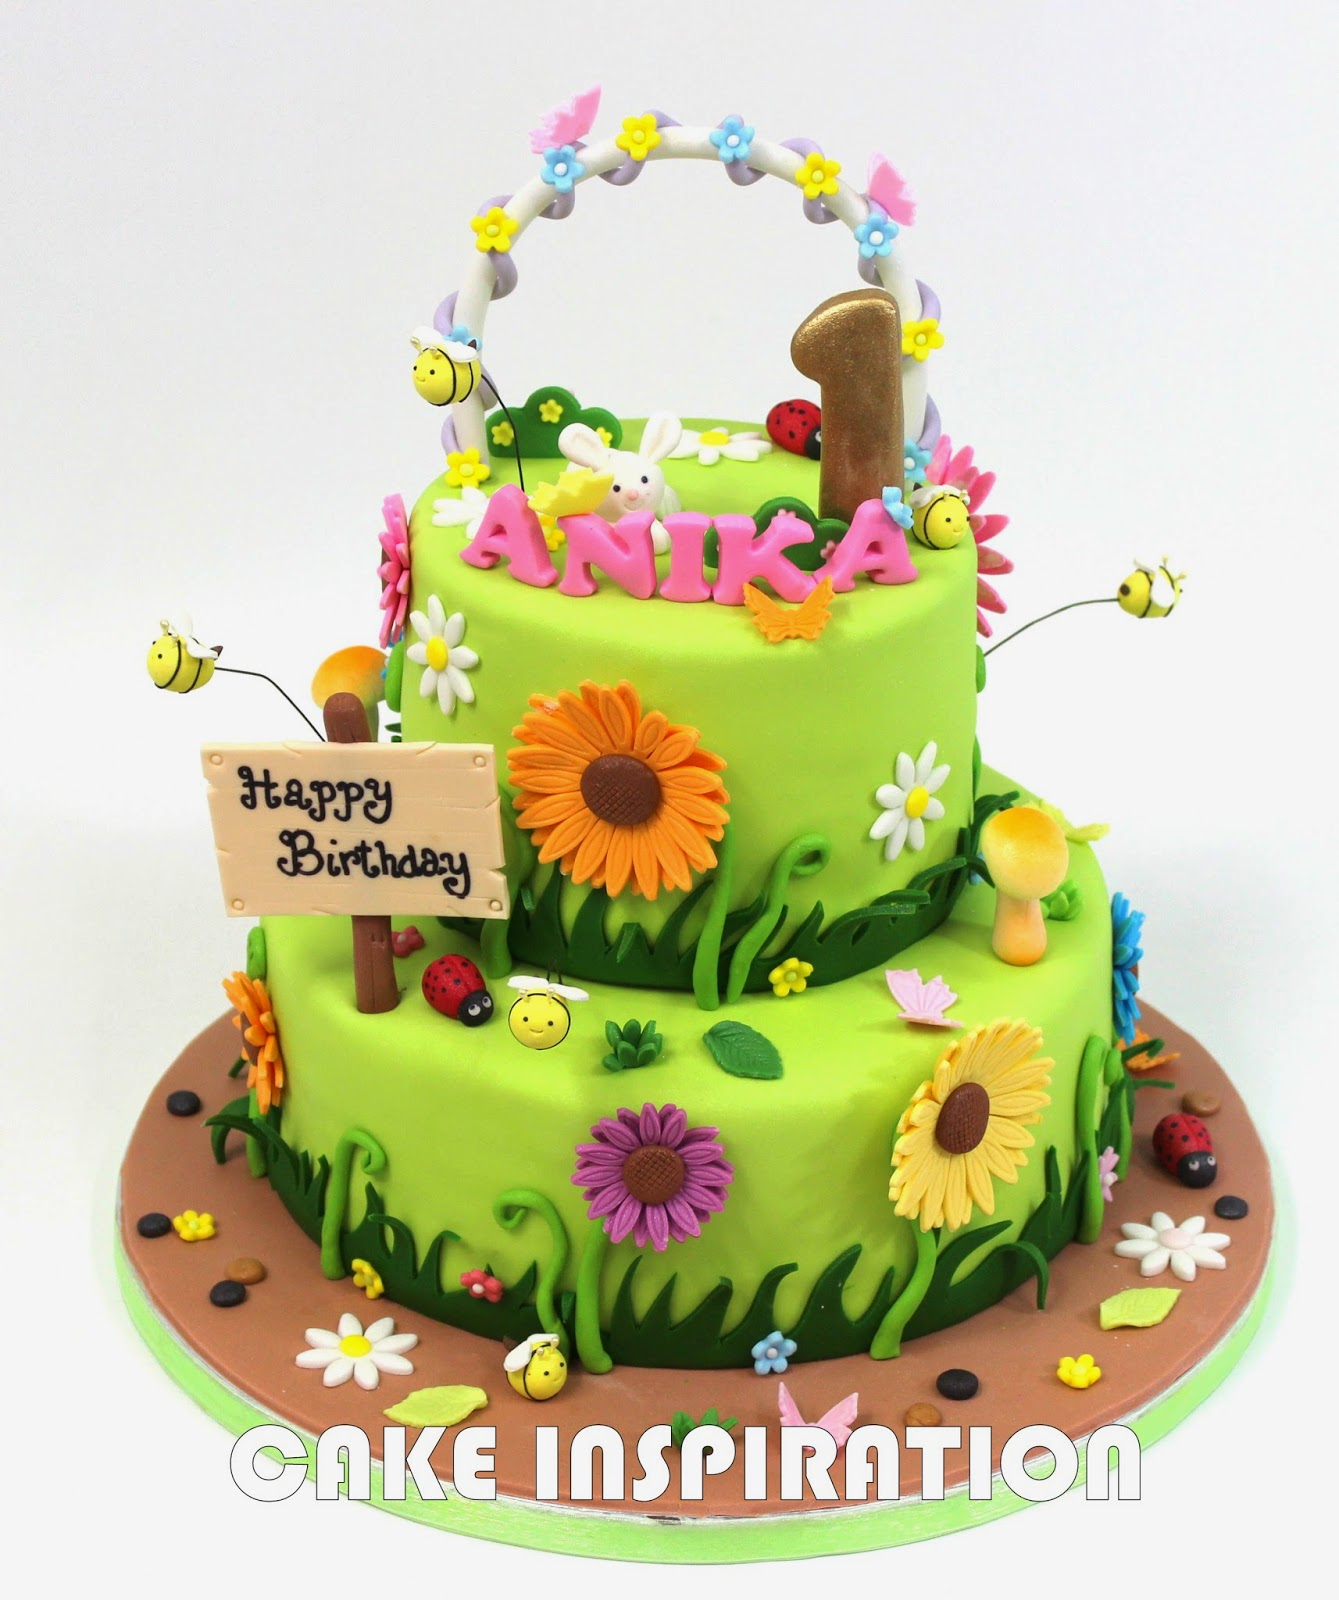 Birthday Cakes Singapore Wedding Children Longevity Corporate